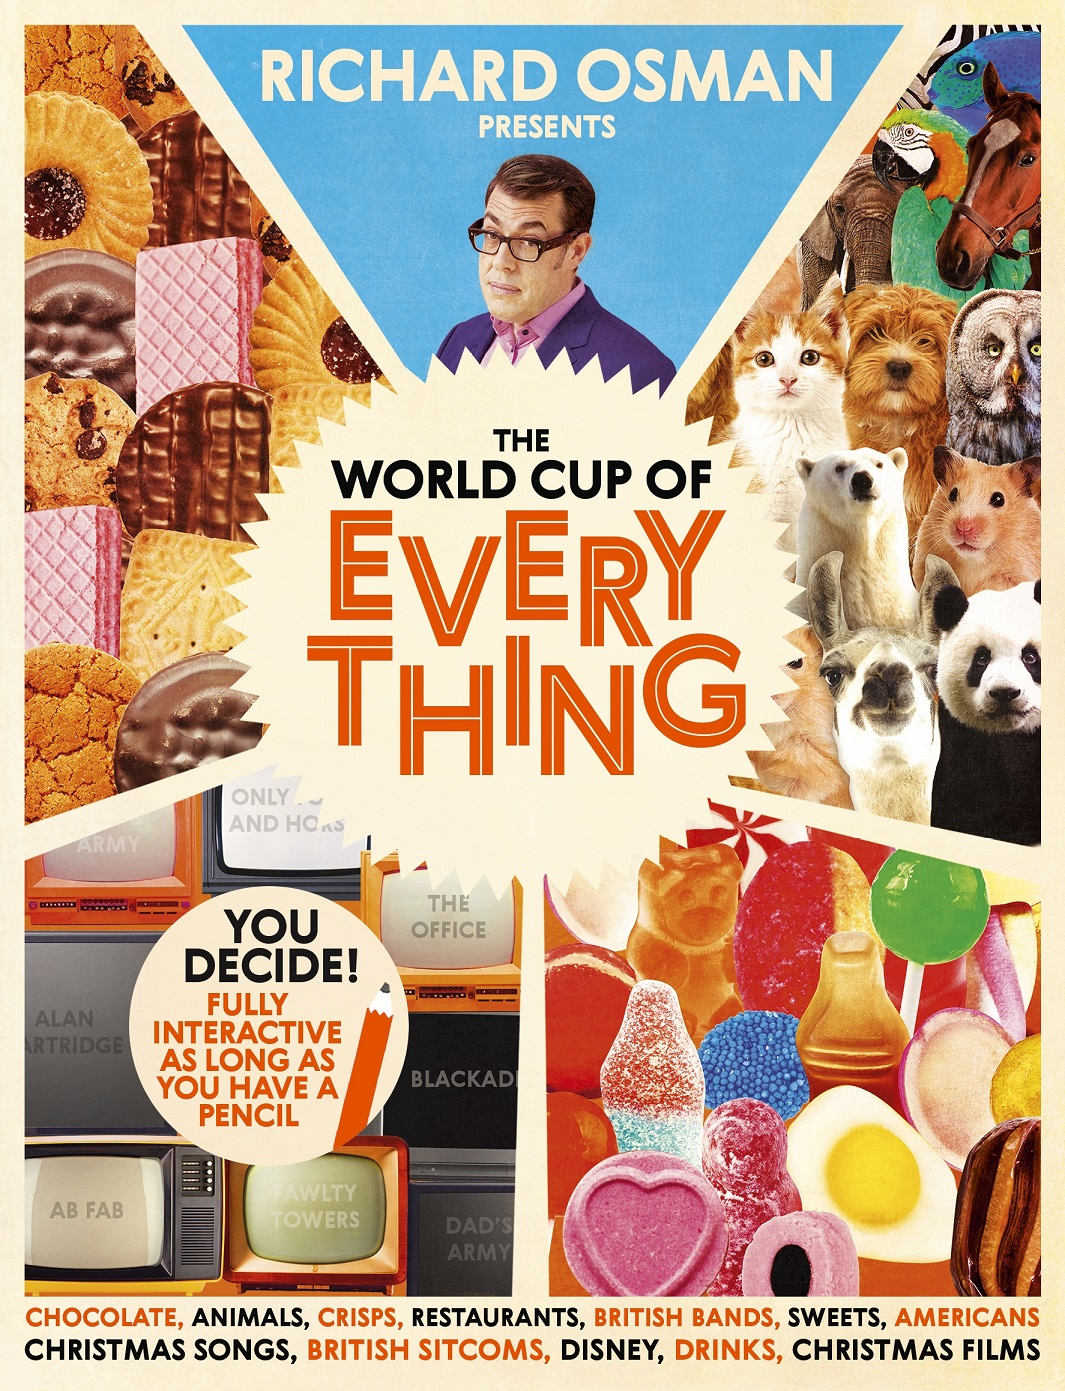 Richard Osman's The World Cup of Everything